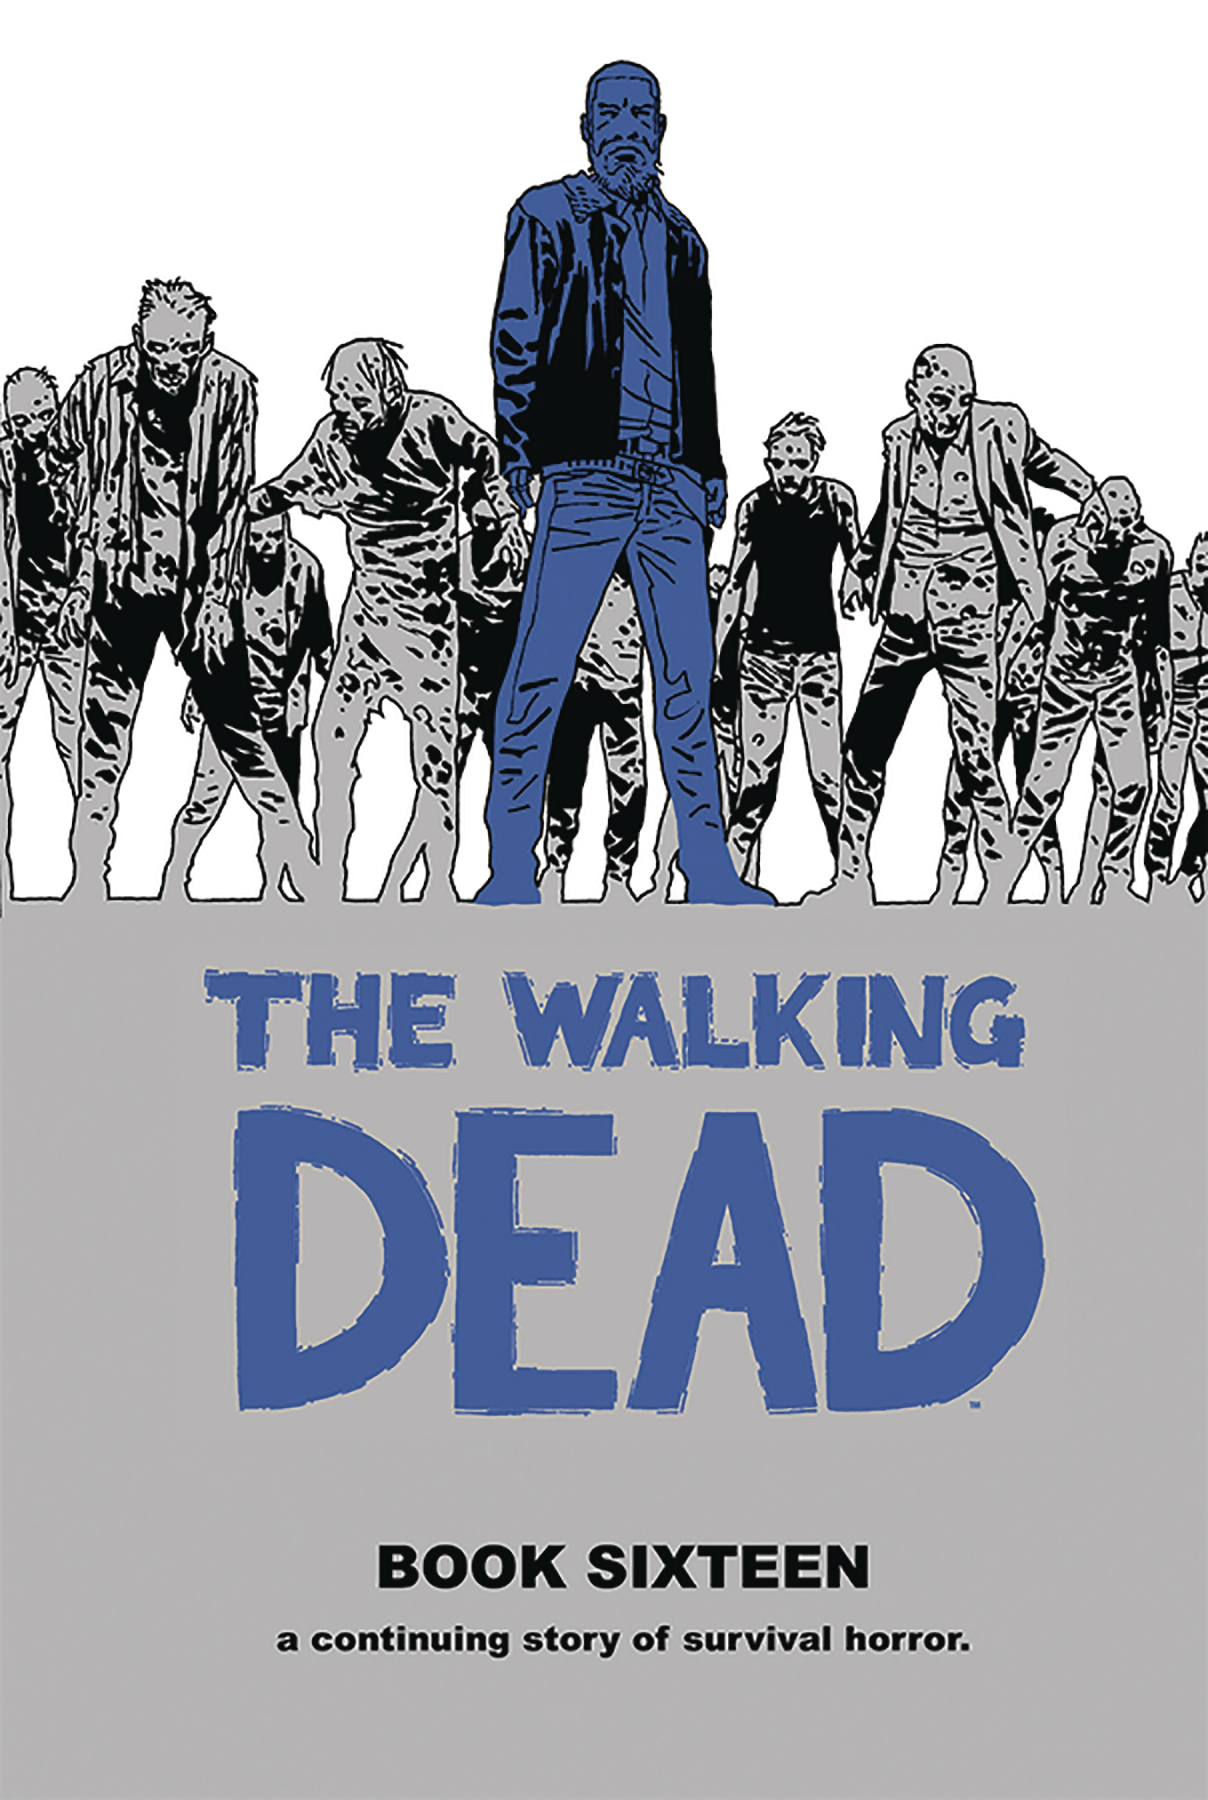 The Walking Dead HC Vol 16